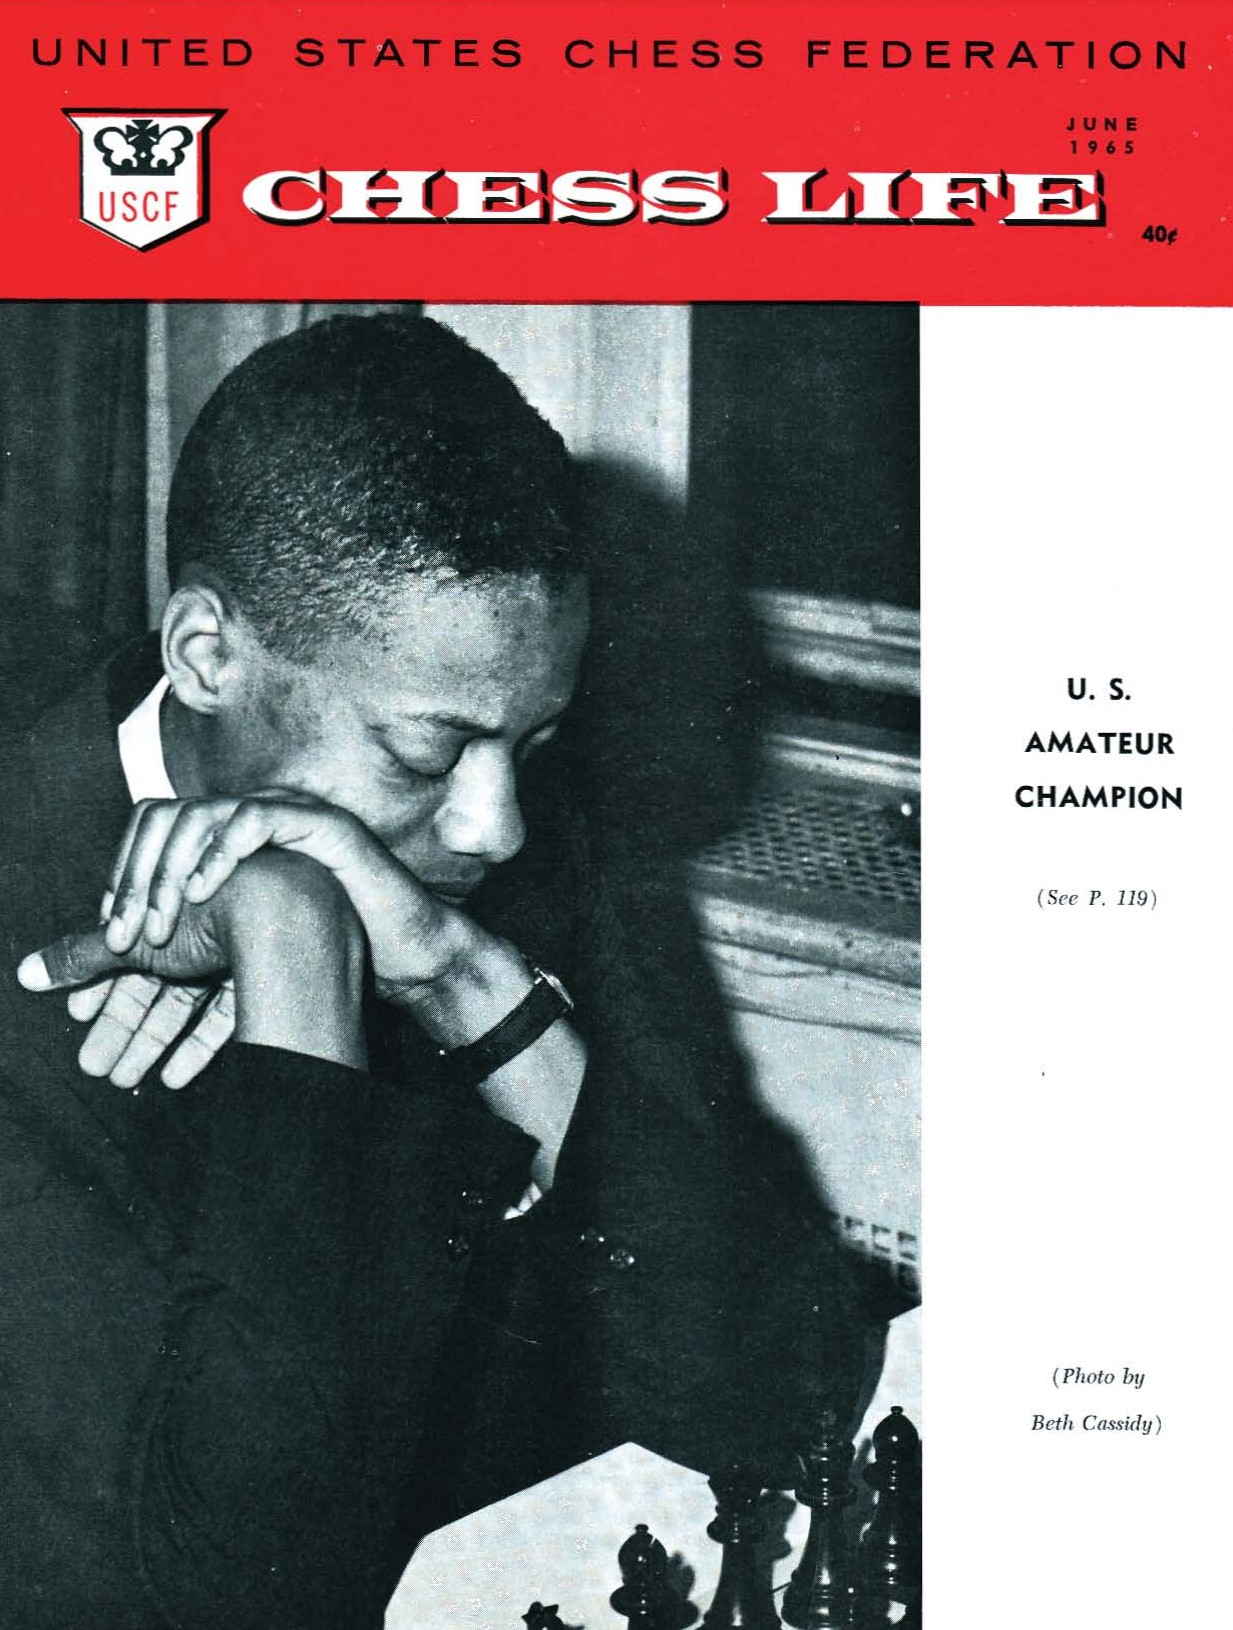 NM Frank Street on the July 1965 cover of U.S. Chess Life. Copyright © 1965, United States Chess Federation.